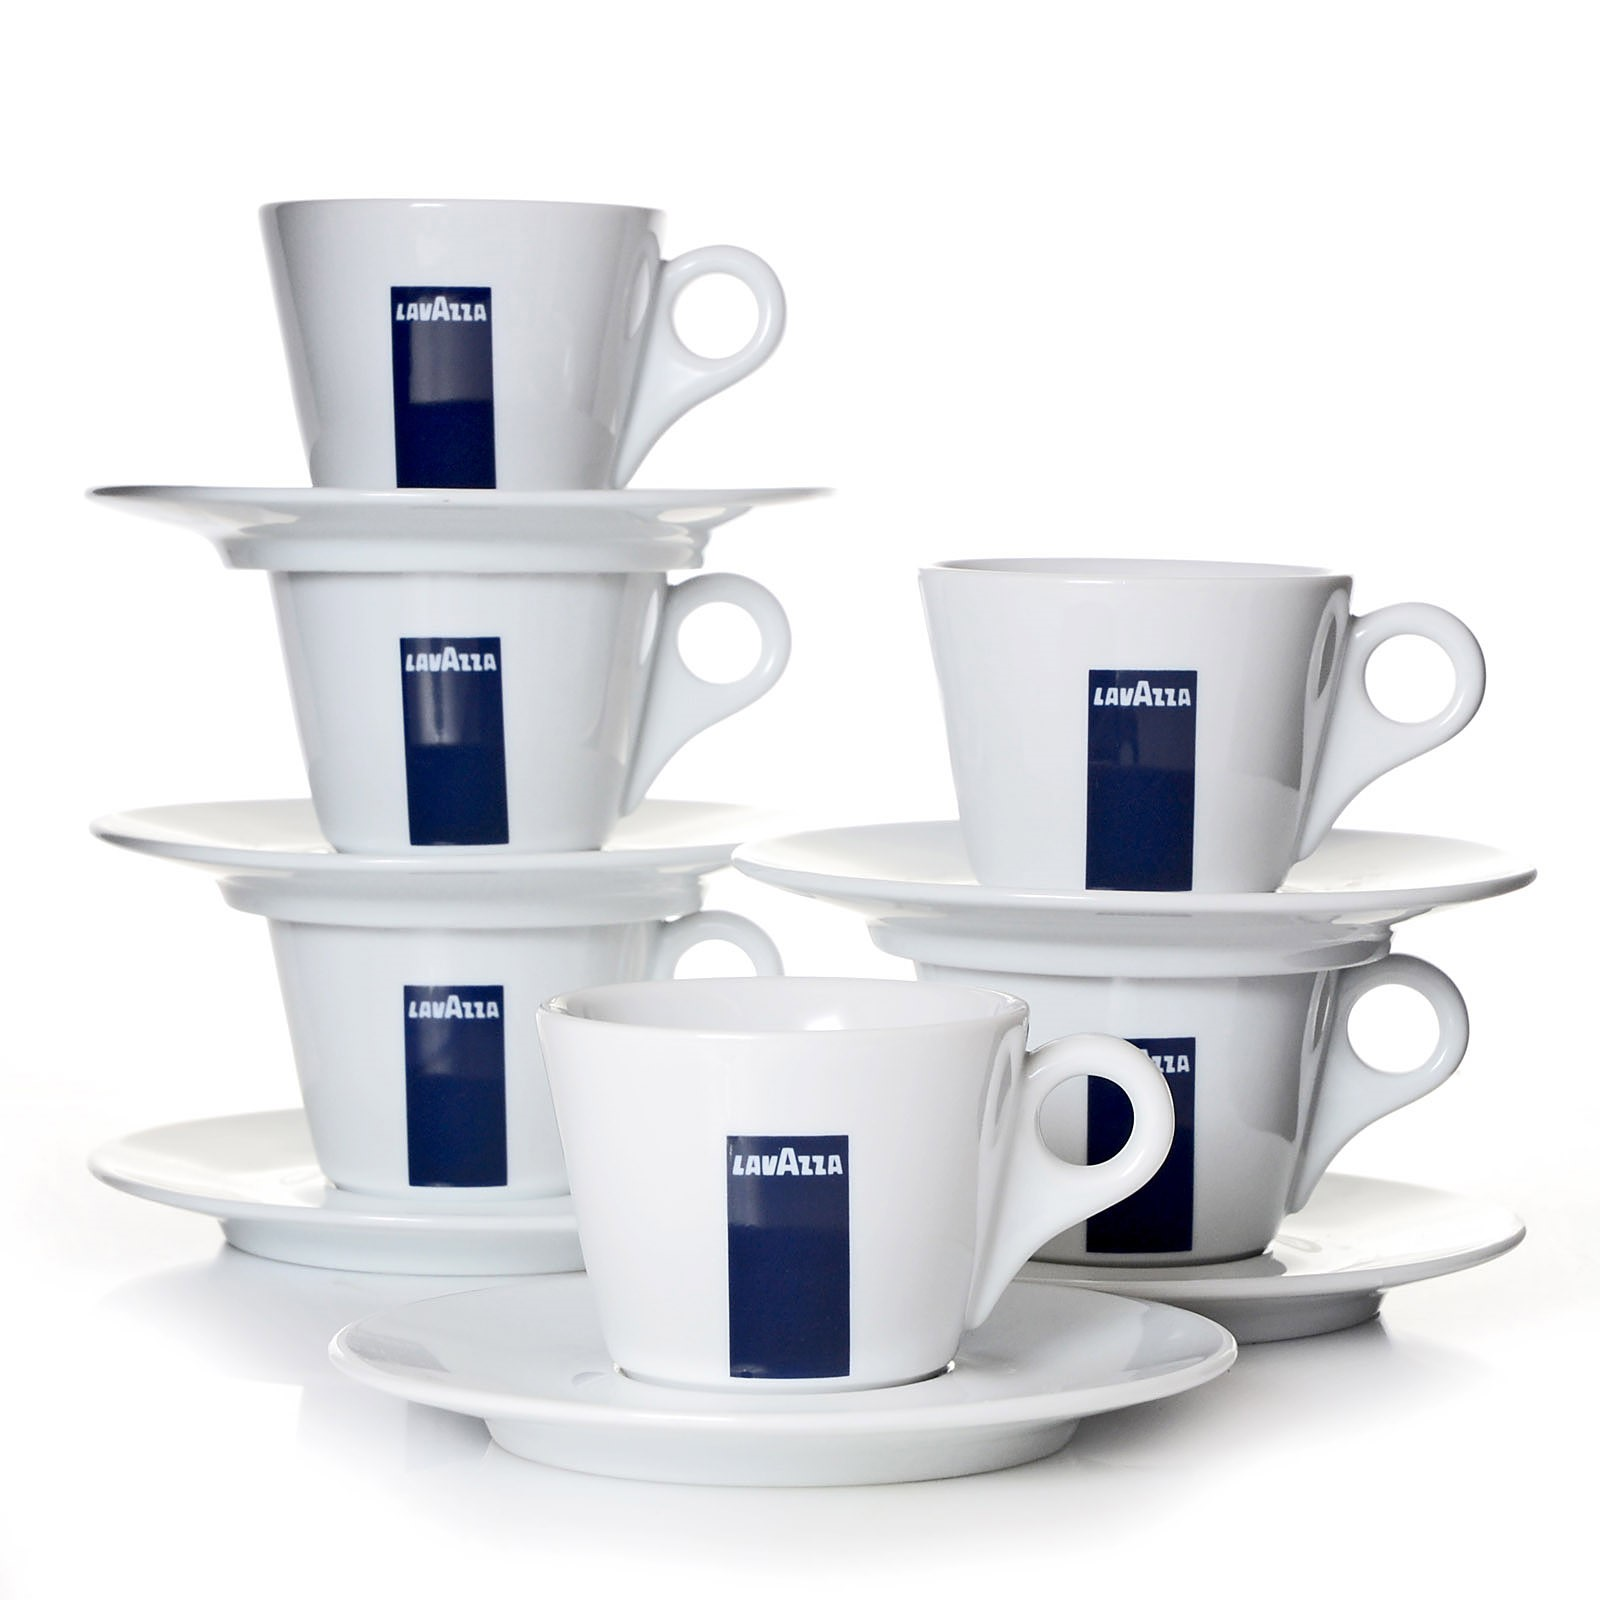 lavazza cappuccinotassen kaffee tassen mit untertassen blu collection 6er pack ebay. Black Bedroom Furniture Sets. Home Design Ideas